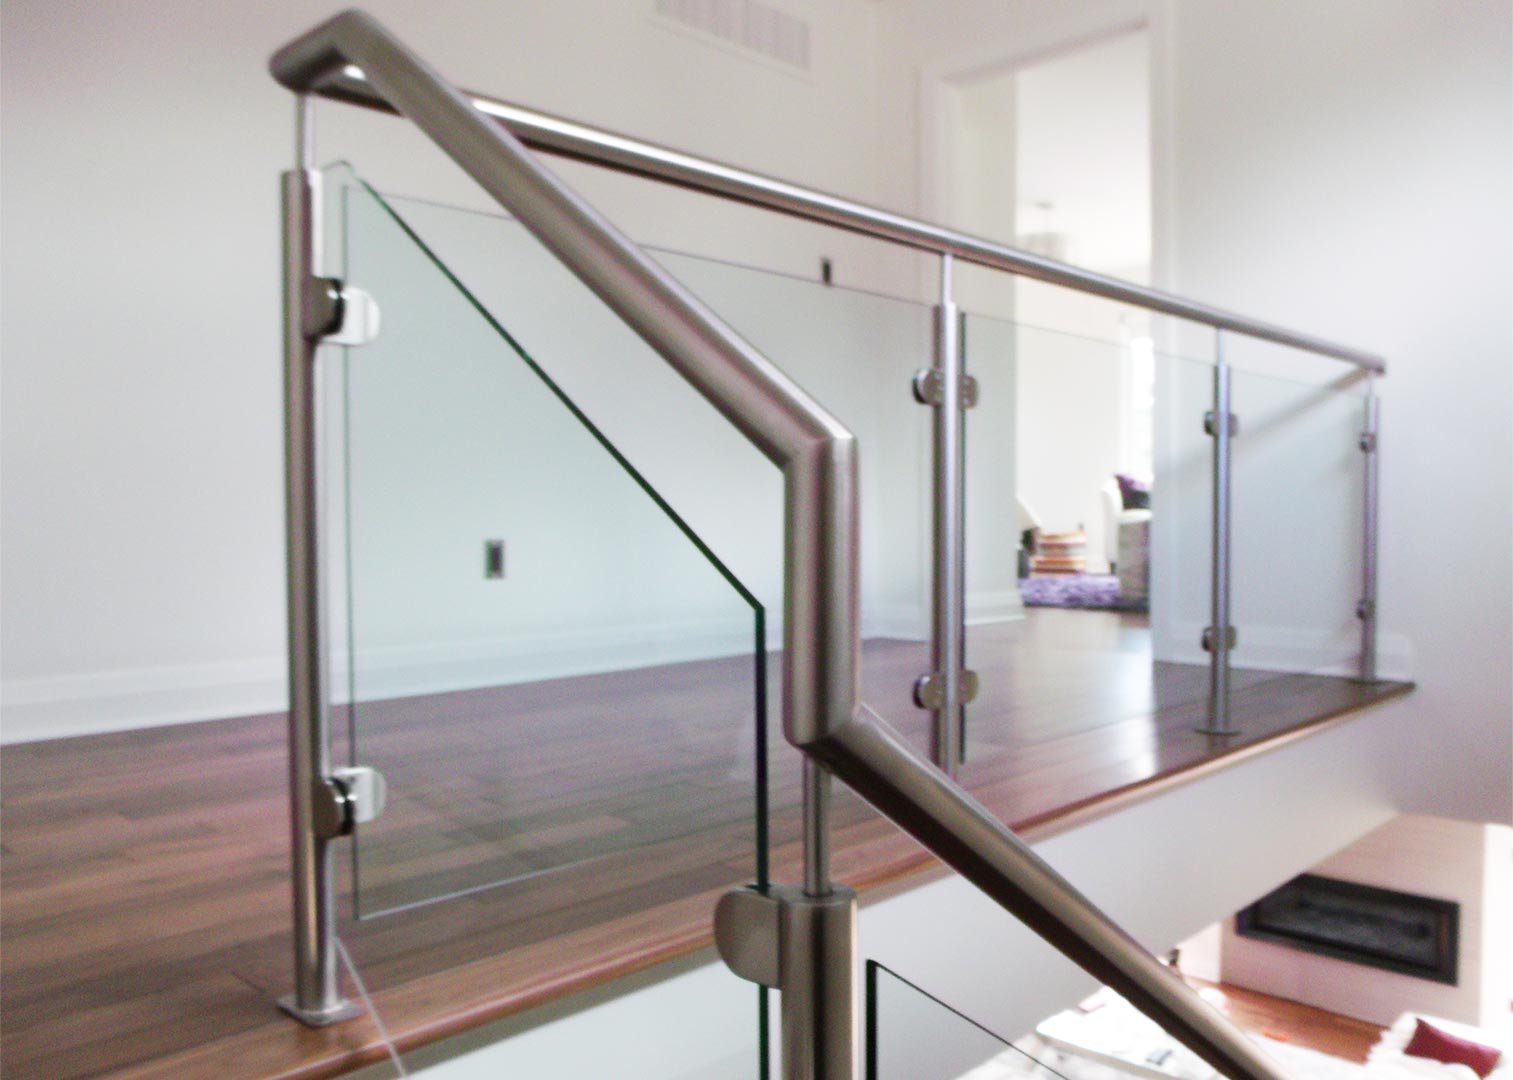 Stainless Steel Glass Railing with Wood Handrail